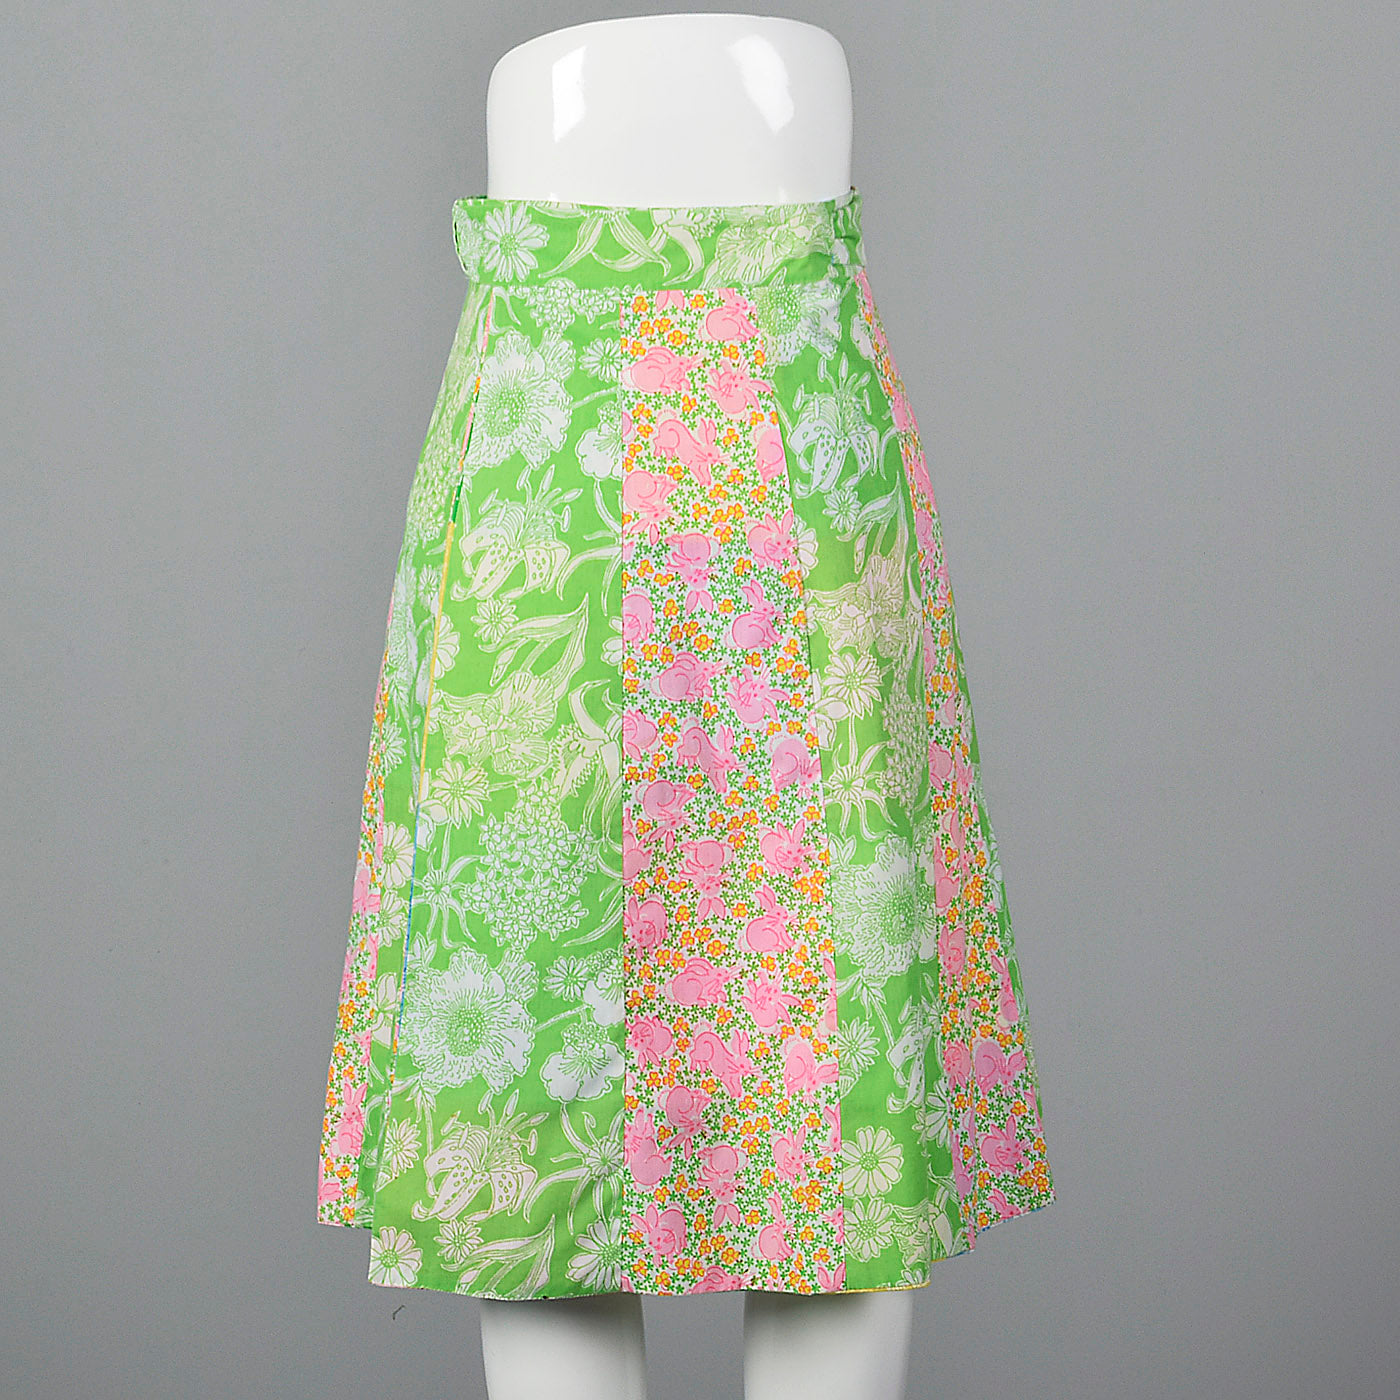 1970s Lilly Pulitzer Reversible Wrap Skirt